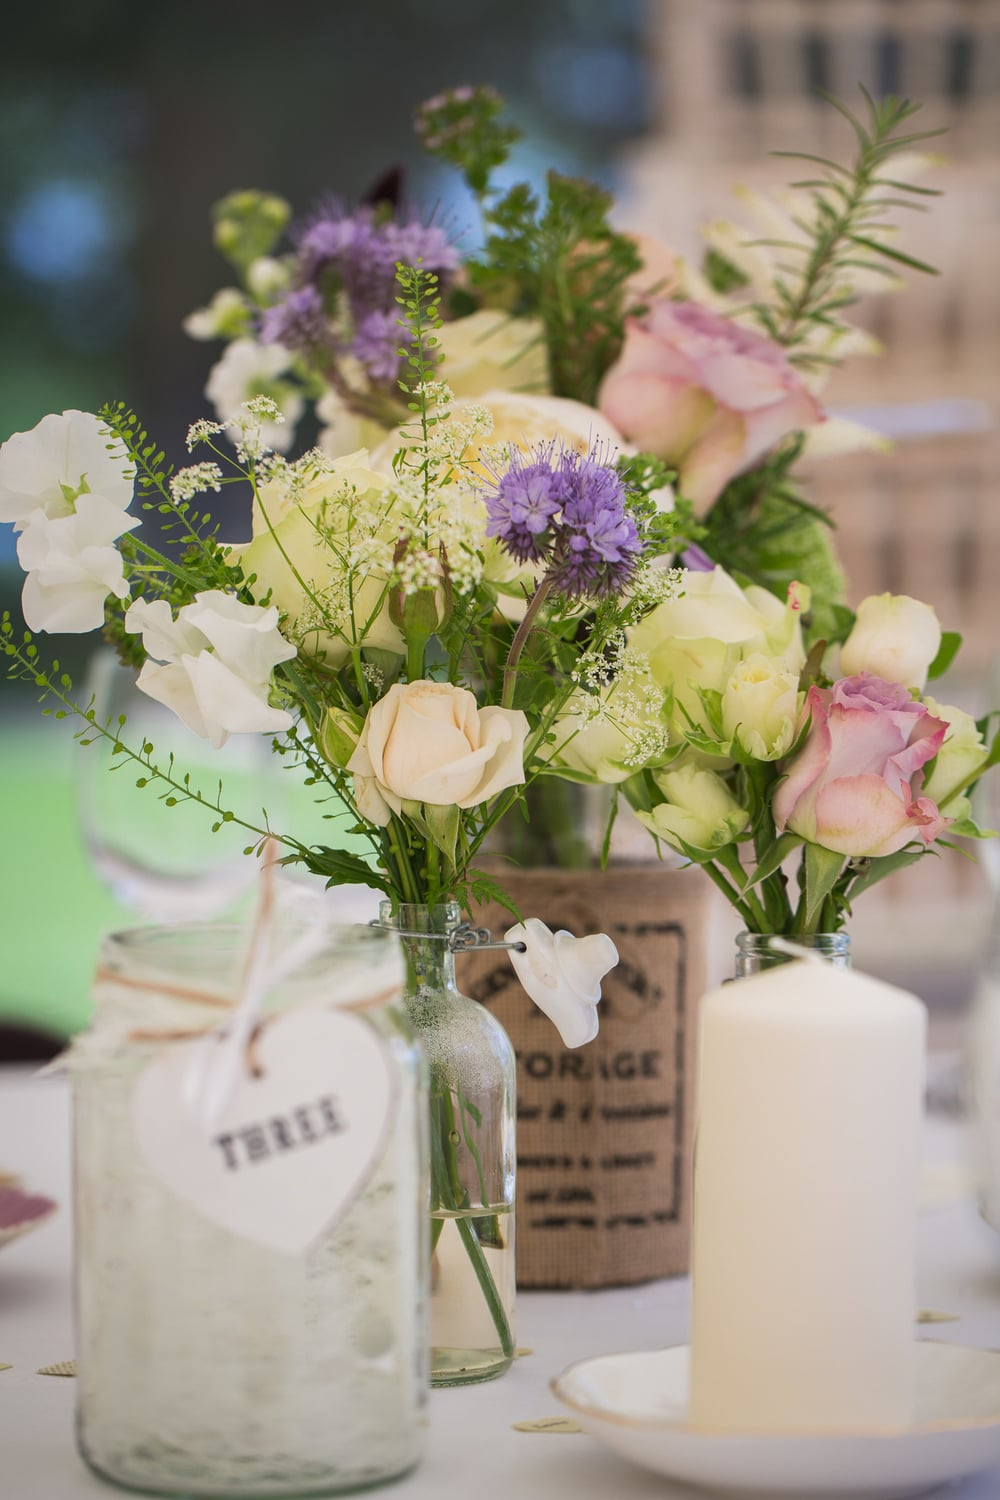 Rustic jam jar of flowers on wedding table